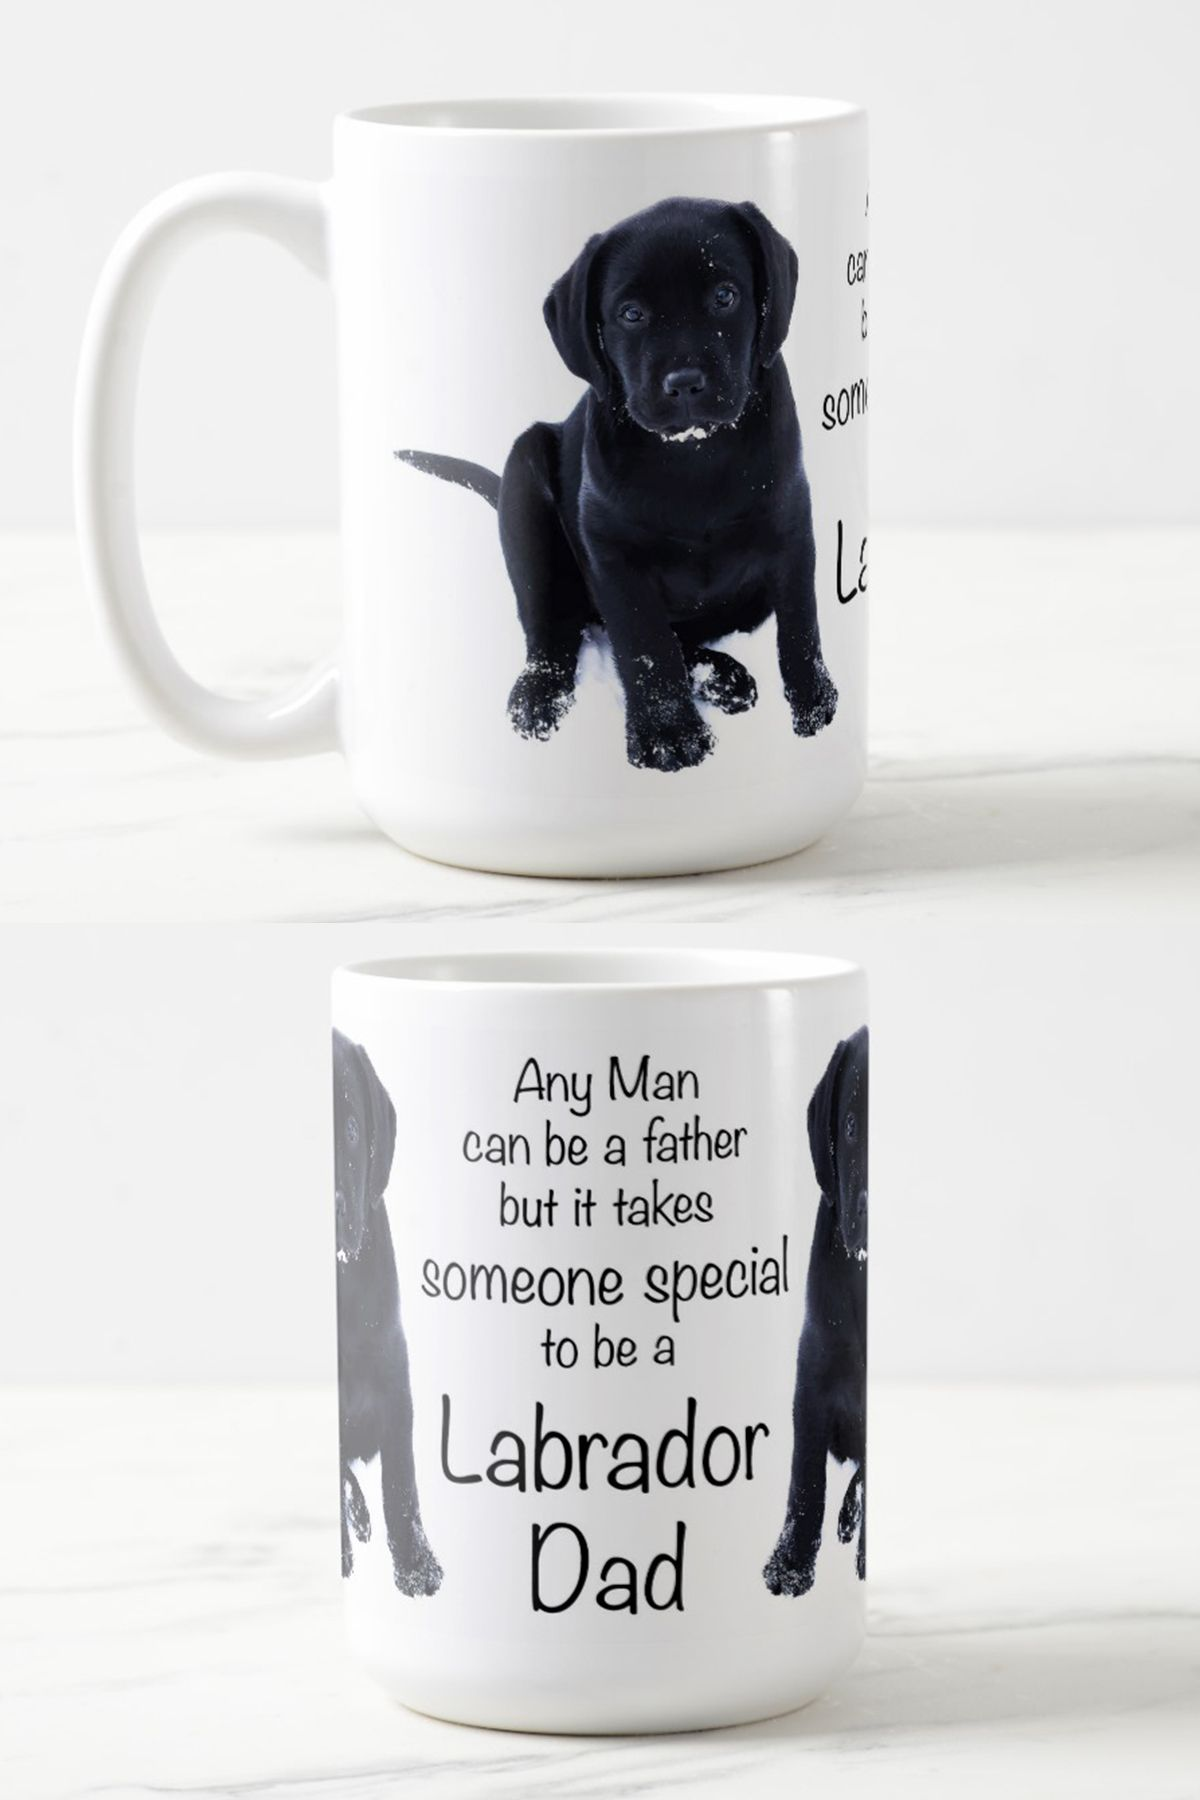 7e82e8c61 Any man can be a father but it takes someone special to be a Labrador Dad .  Labrador Dad , Black Lab Dad, Labrador Mug , Labrador Gifts , Black Lab  Gifts ...